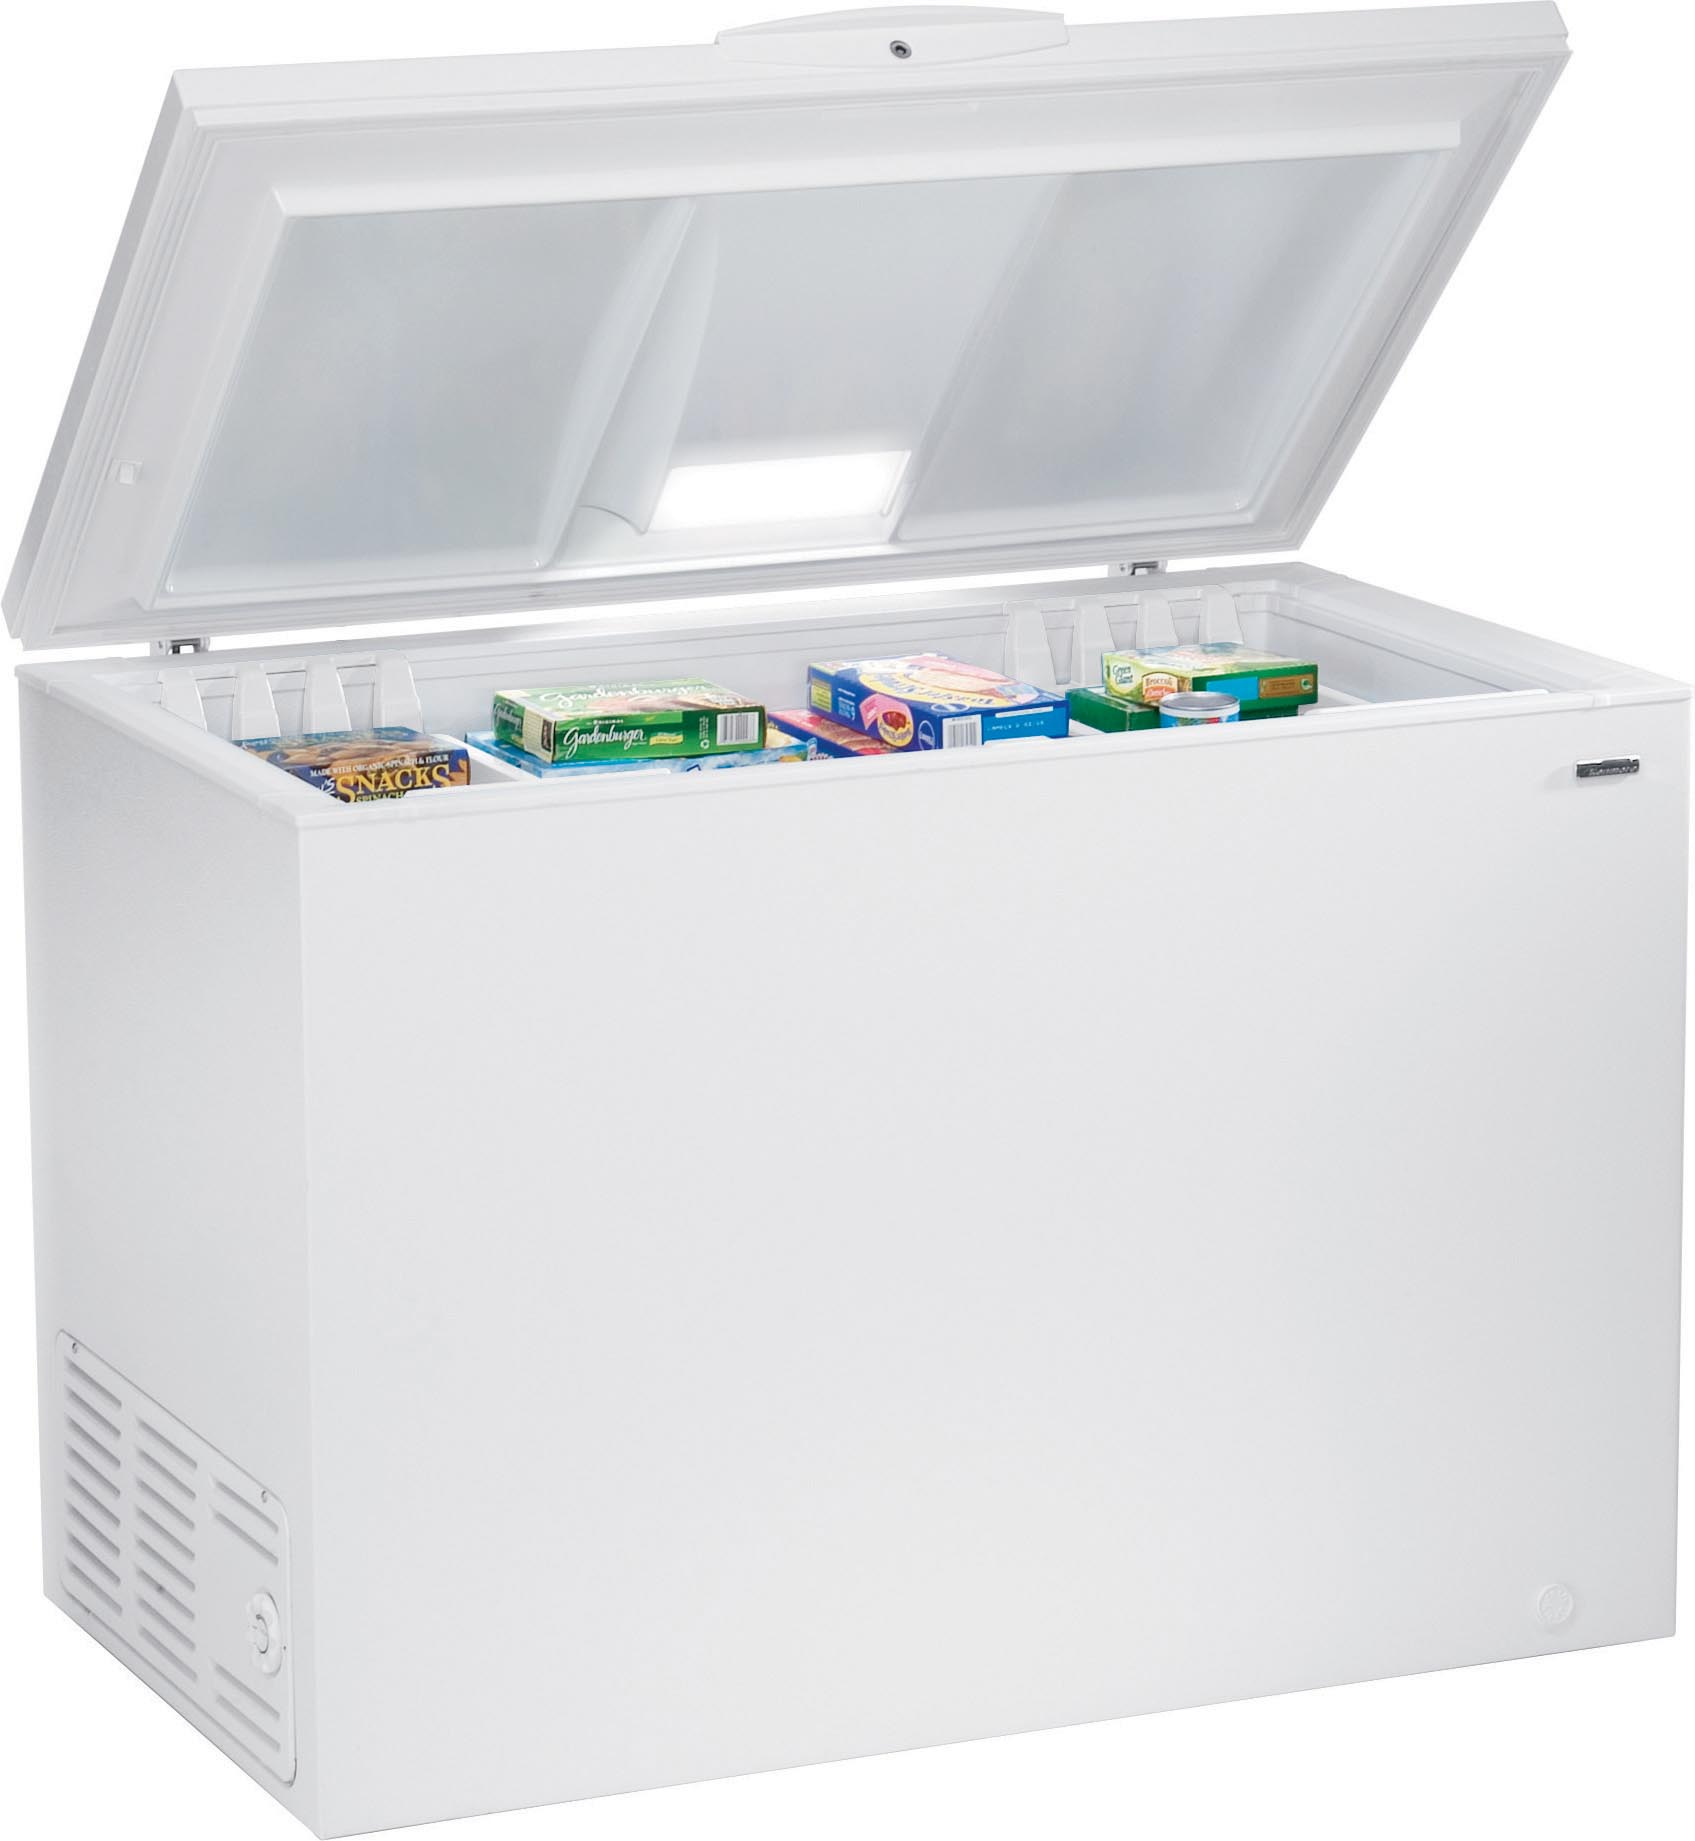 Kmart Freezer Kenmore 14 8 Chest Freezer Space Saving Efficiency At Sears